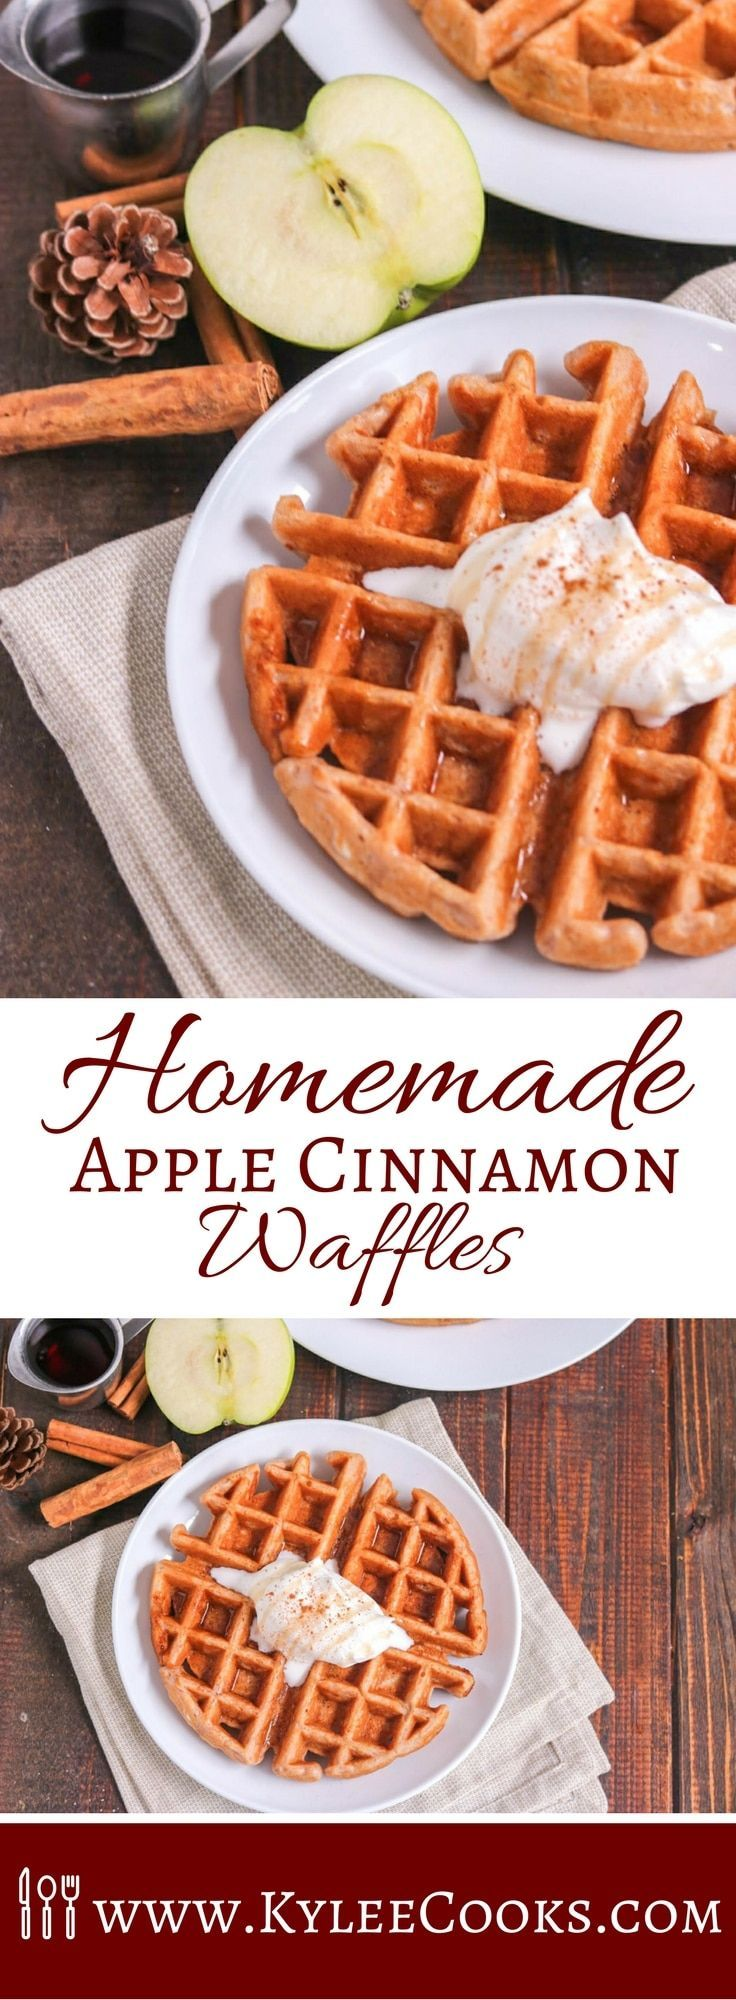 Apples and Cinnamon are the perfect flavorings for these Homemade Apple Cinnamon Waffles. Warmth, comfort and so much yum! The whole family will enjoy these!  #breakfast #waffles #apple #cinnamon